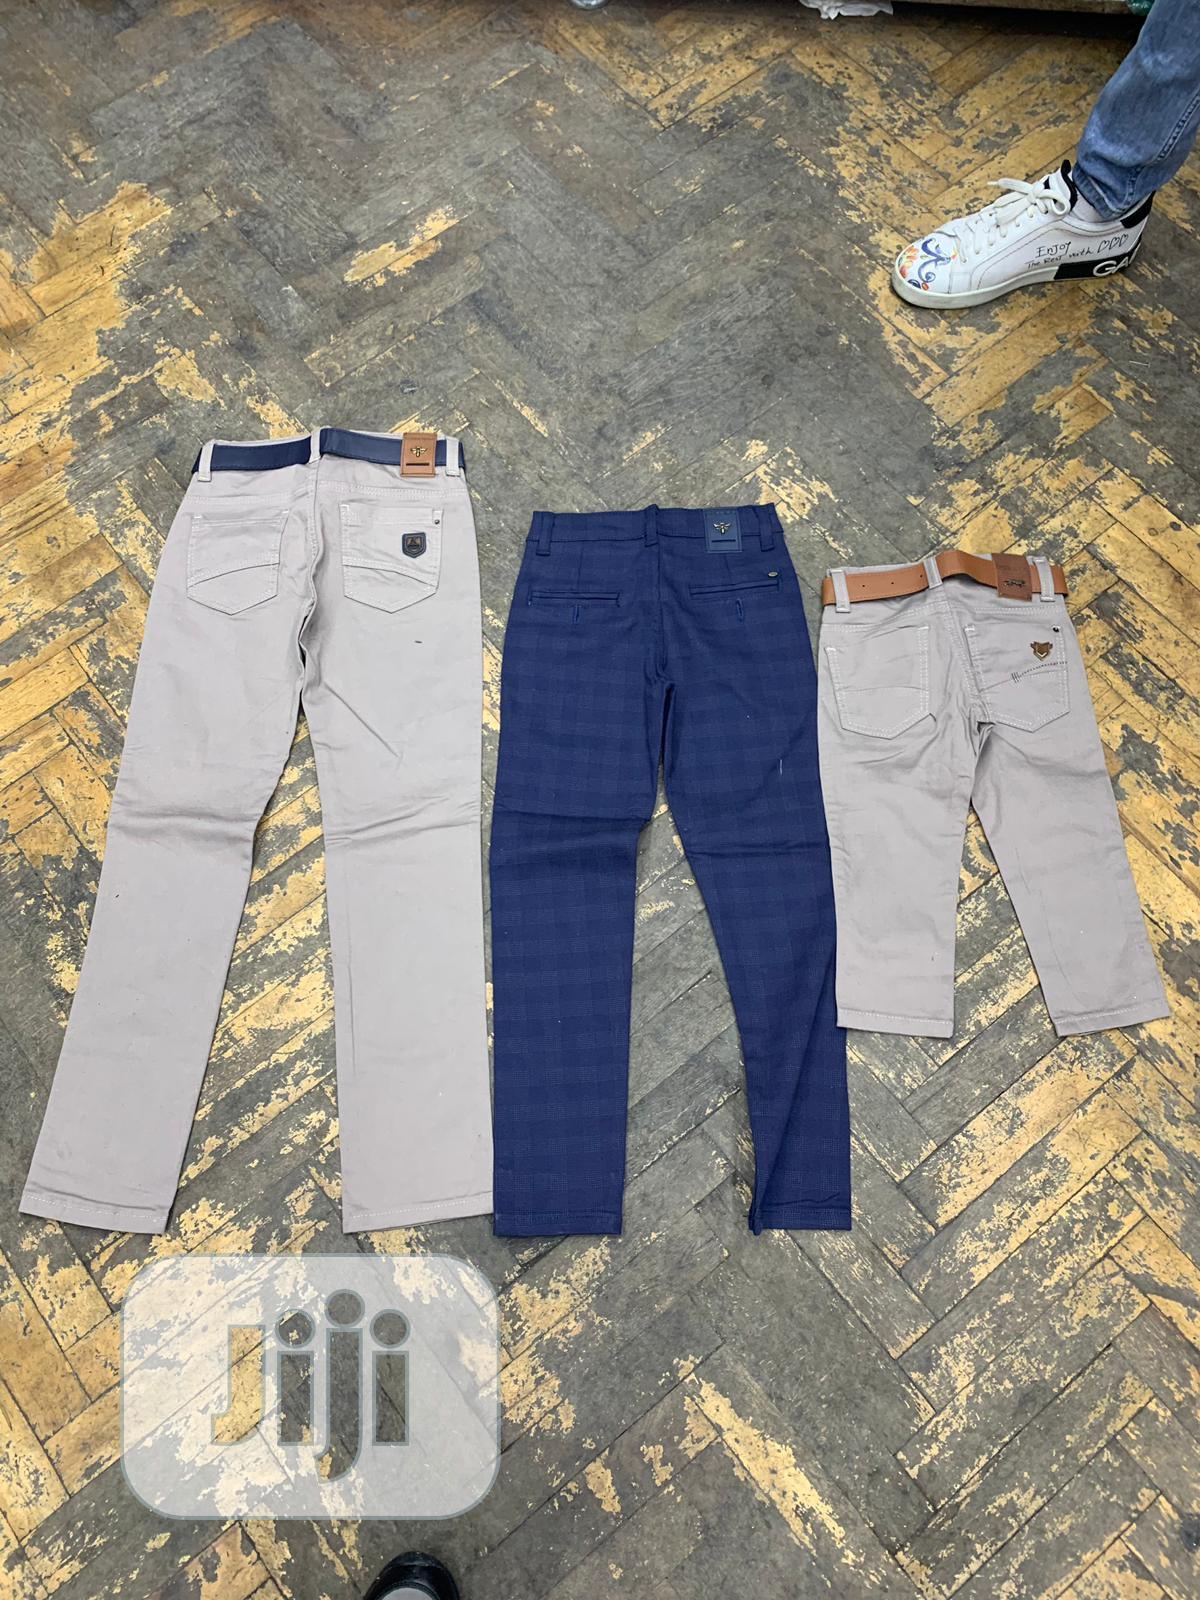 Archive: Cream Color Jeans And Blue Jeans